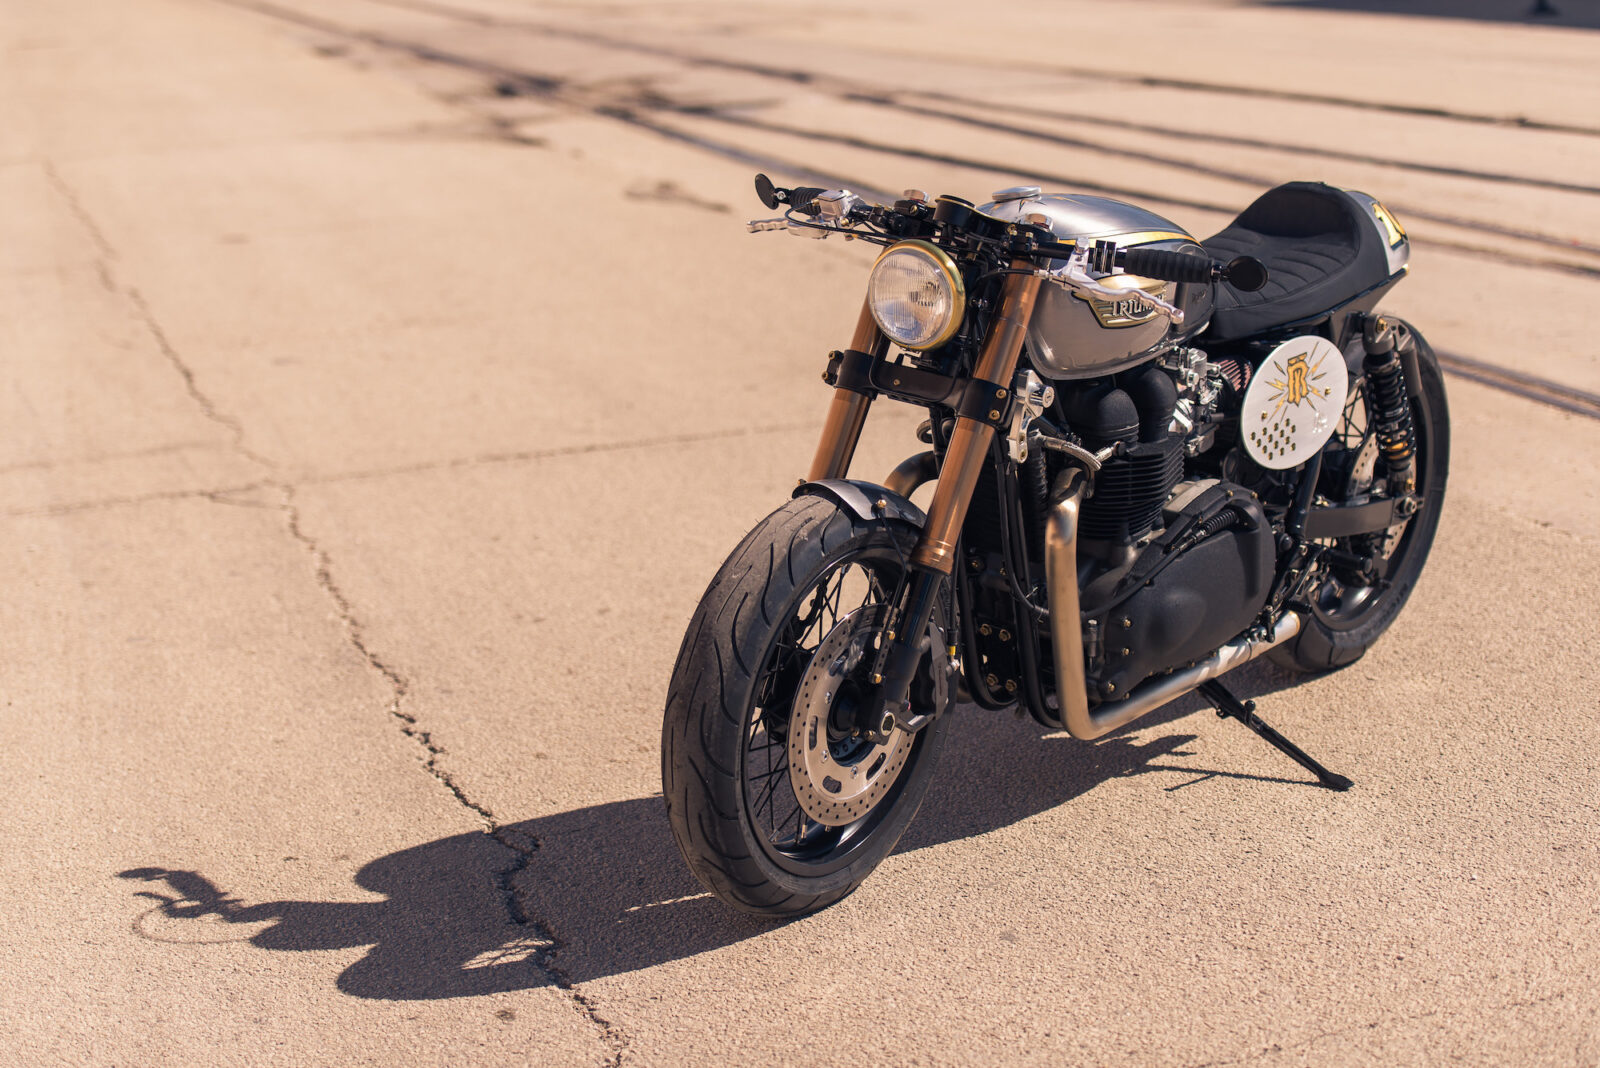 Triumph Bonneville by Analog Motorcycles 8 1600x1068 - Triumph Bonneville by Analog Motorcycles